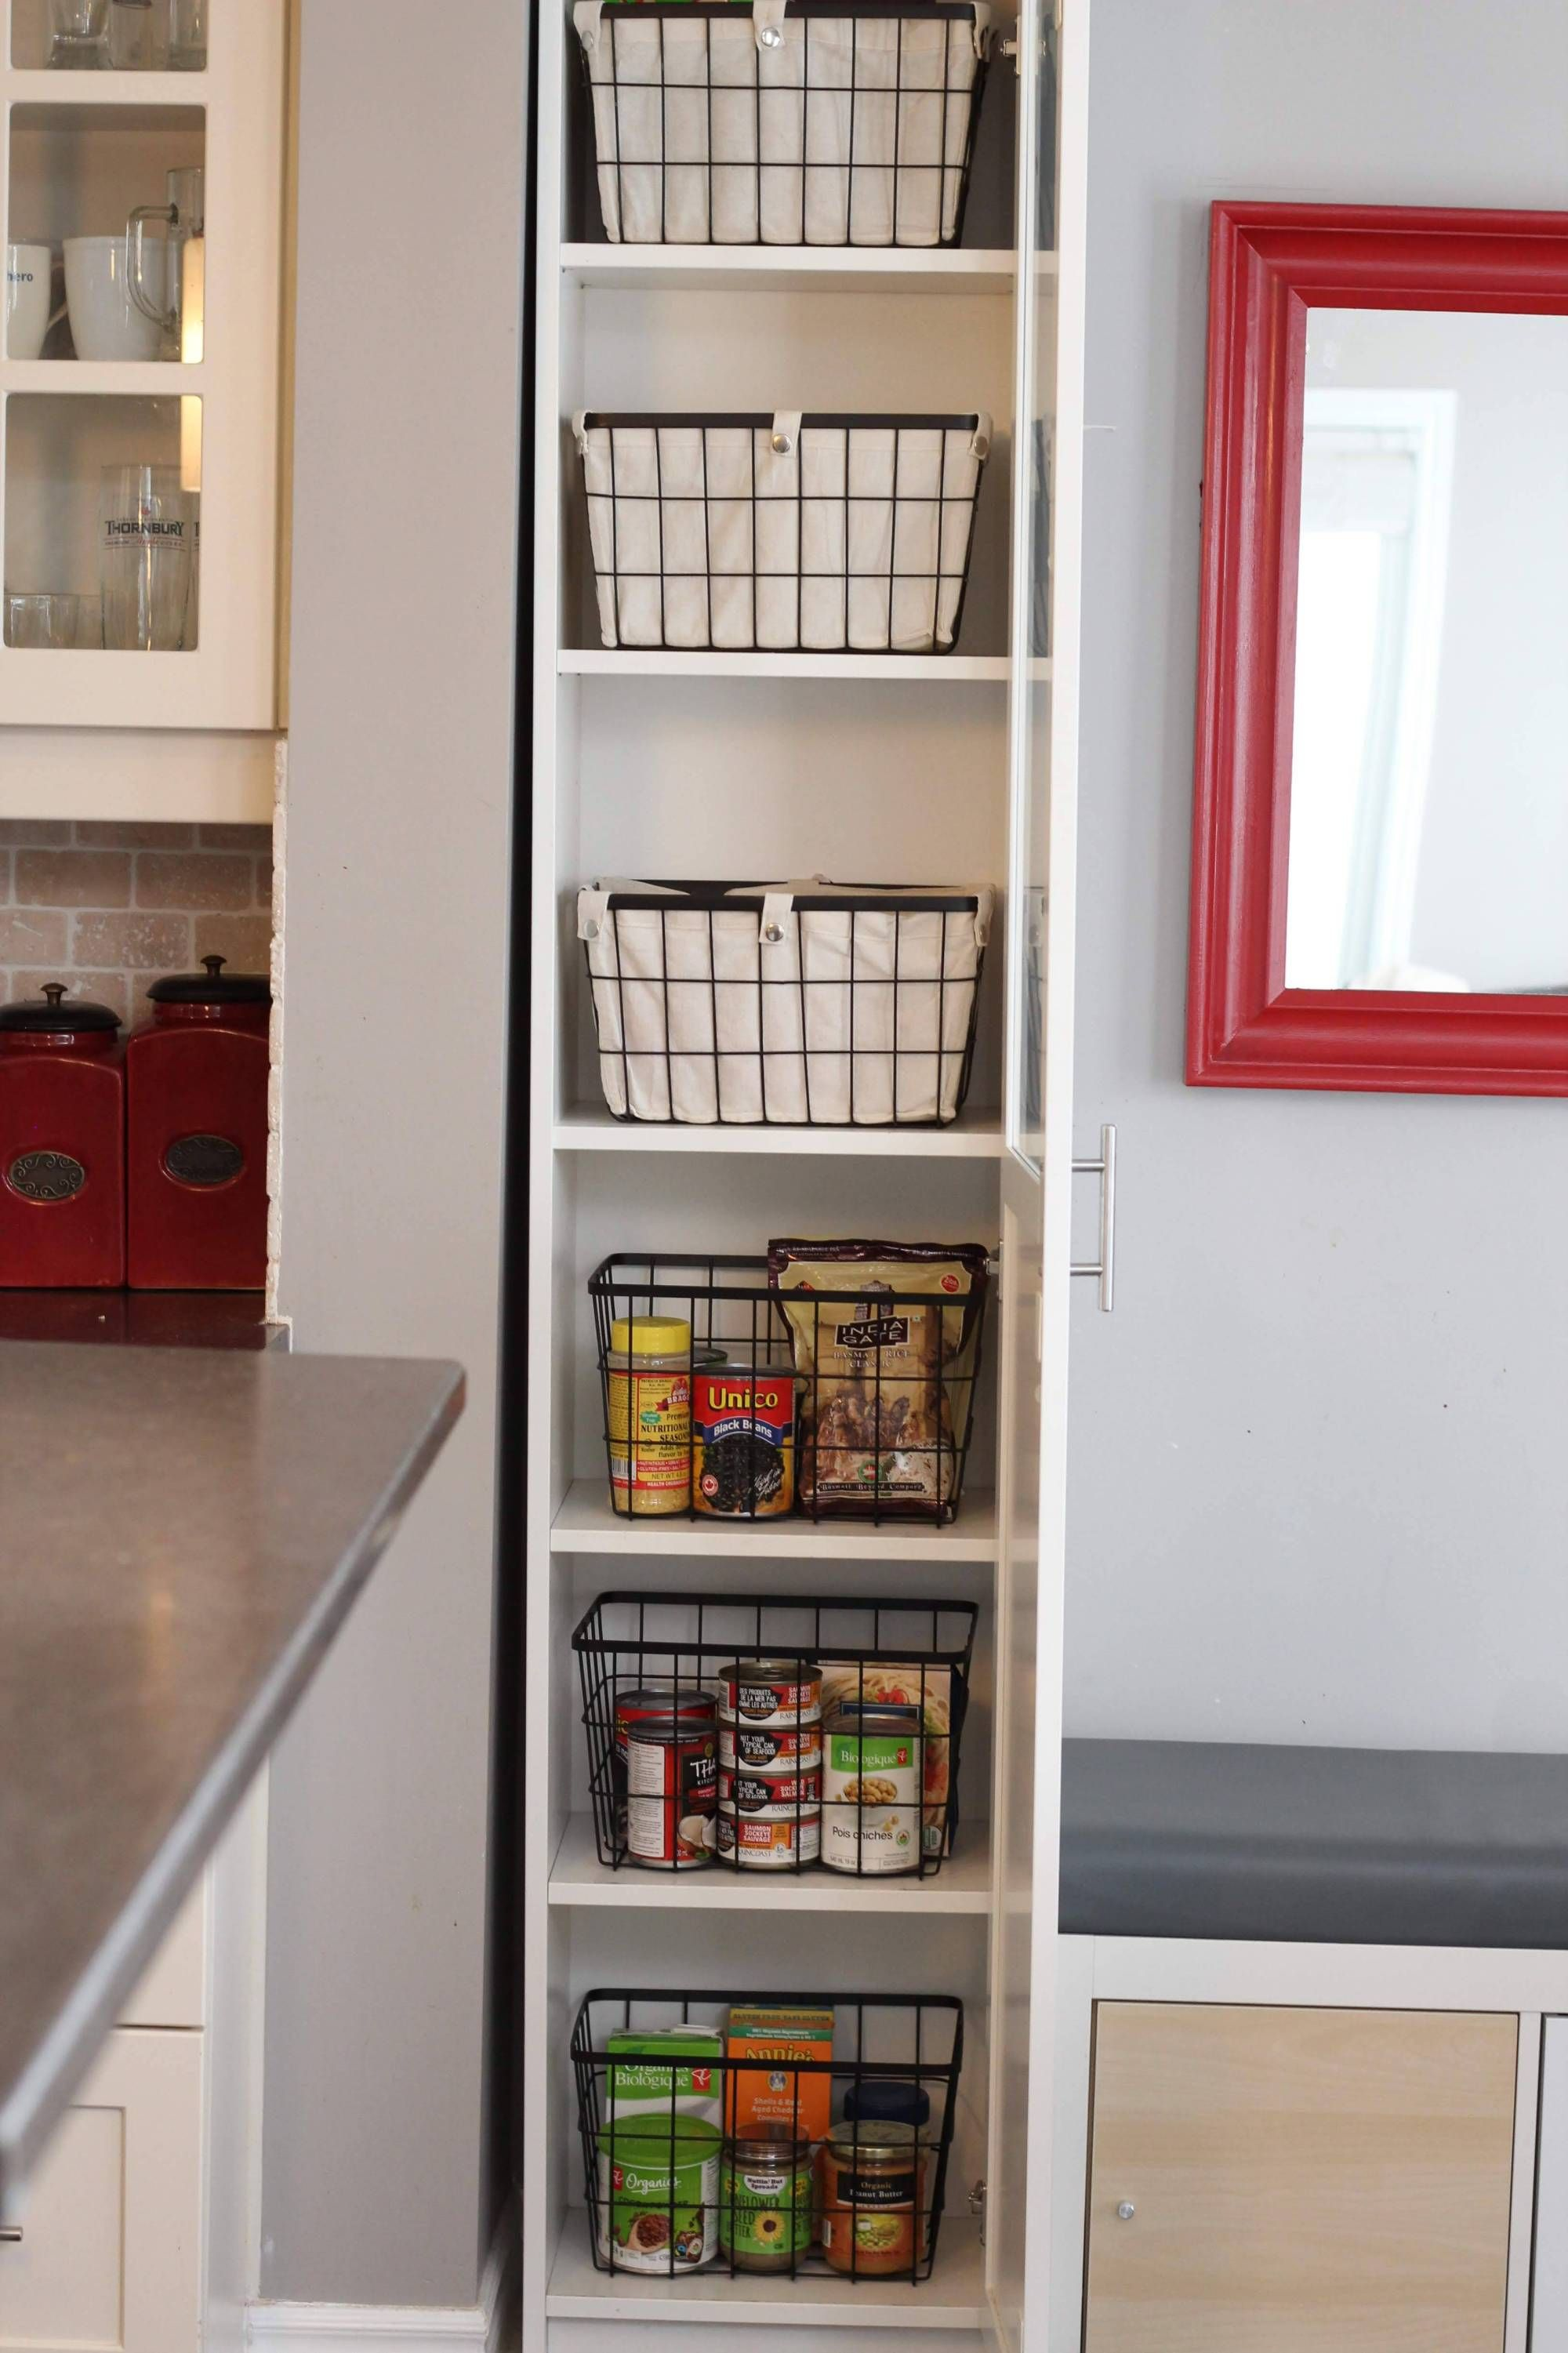 The Easiest Diy Kitchen Pantry Cabinet With The Ikea Billy Bookcase Hack In 2020 Billy Bookcase Hack Freestanding Kitchen Ikea Billy Bookcase Hack